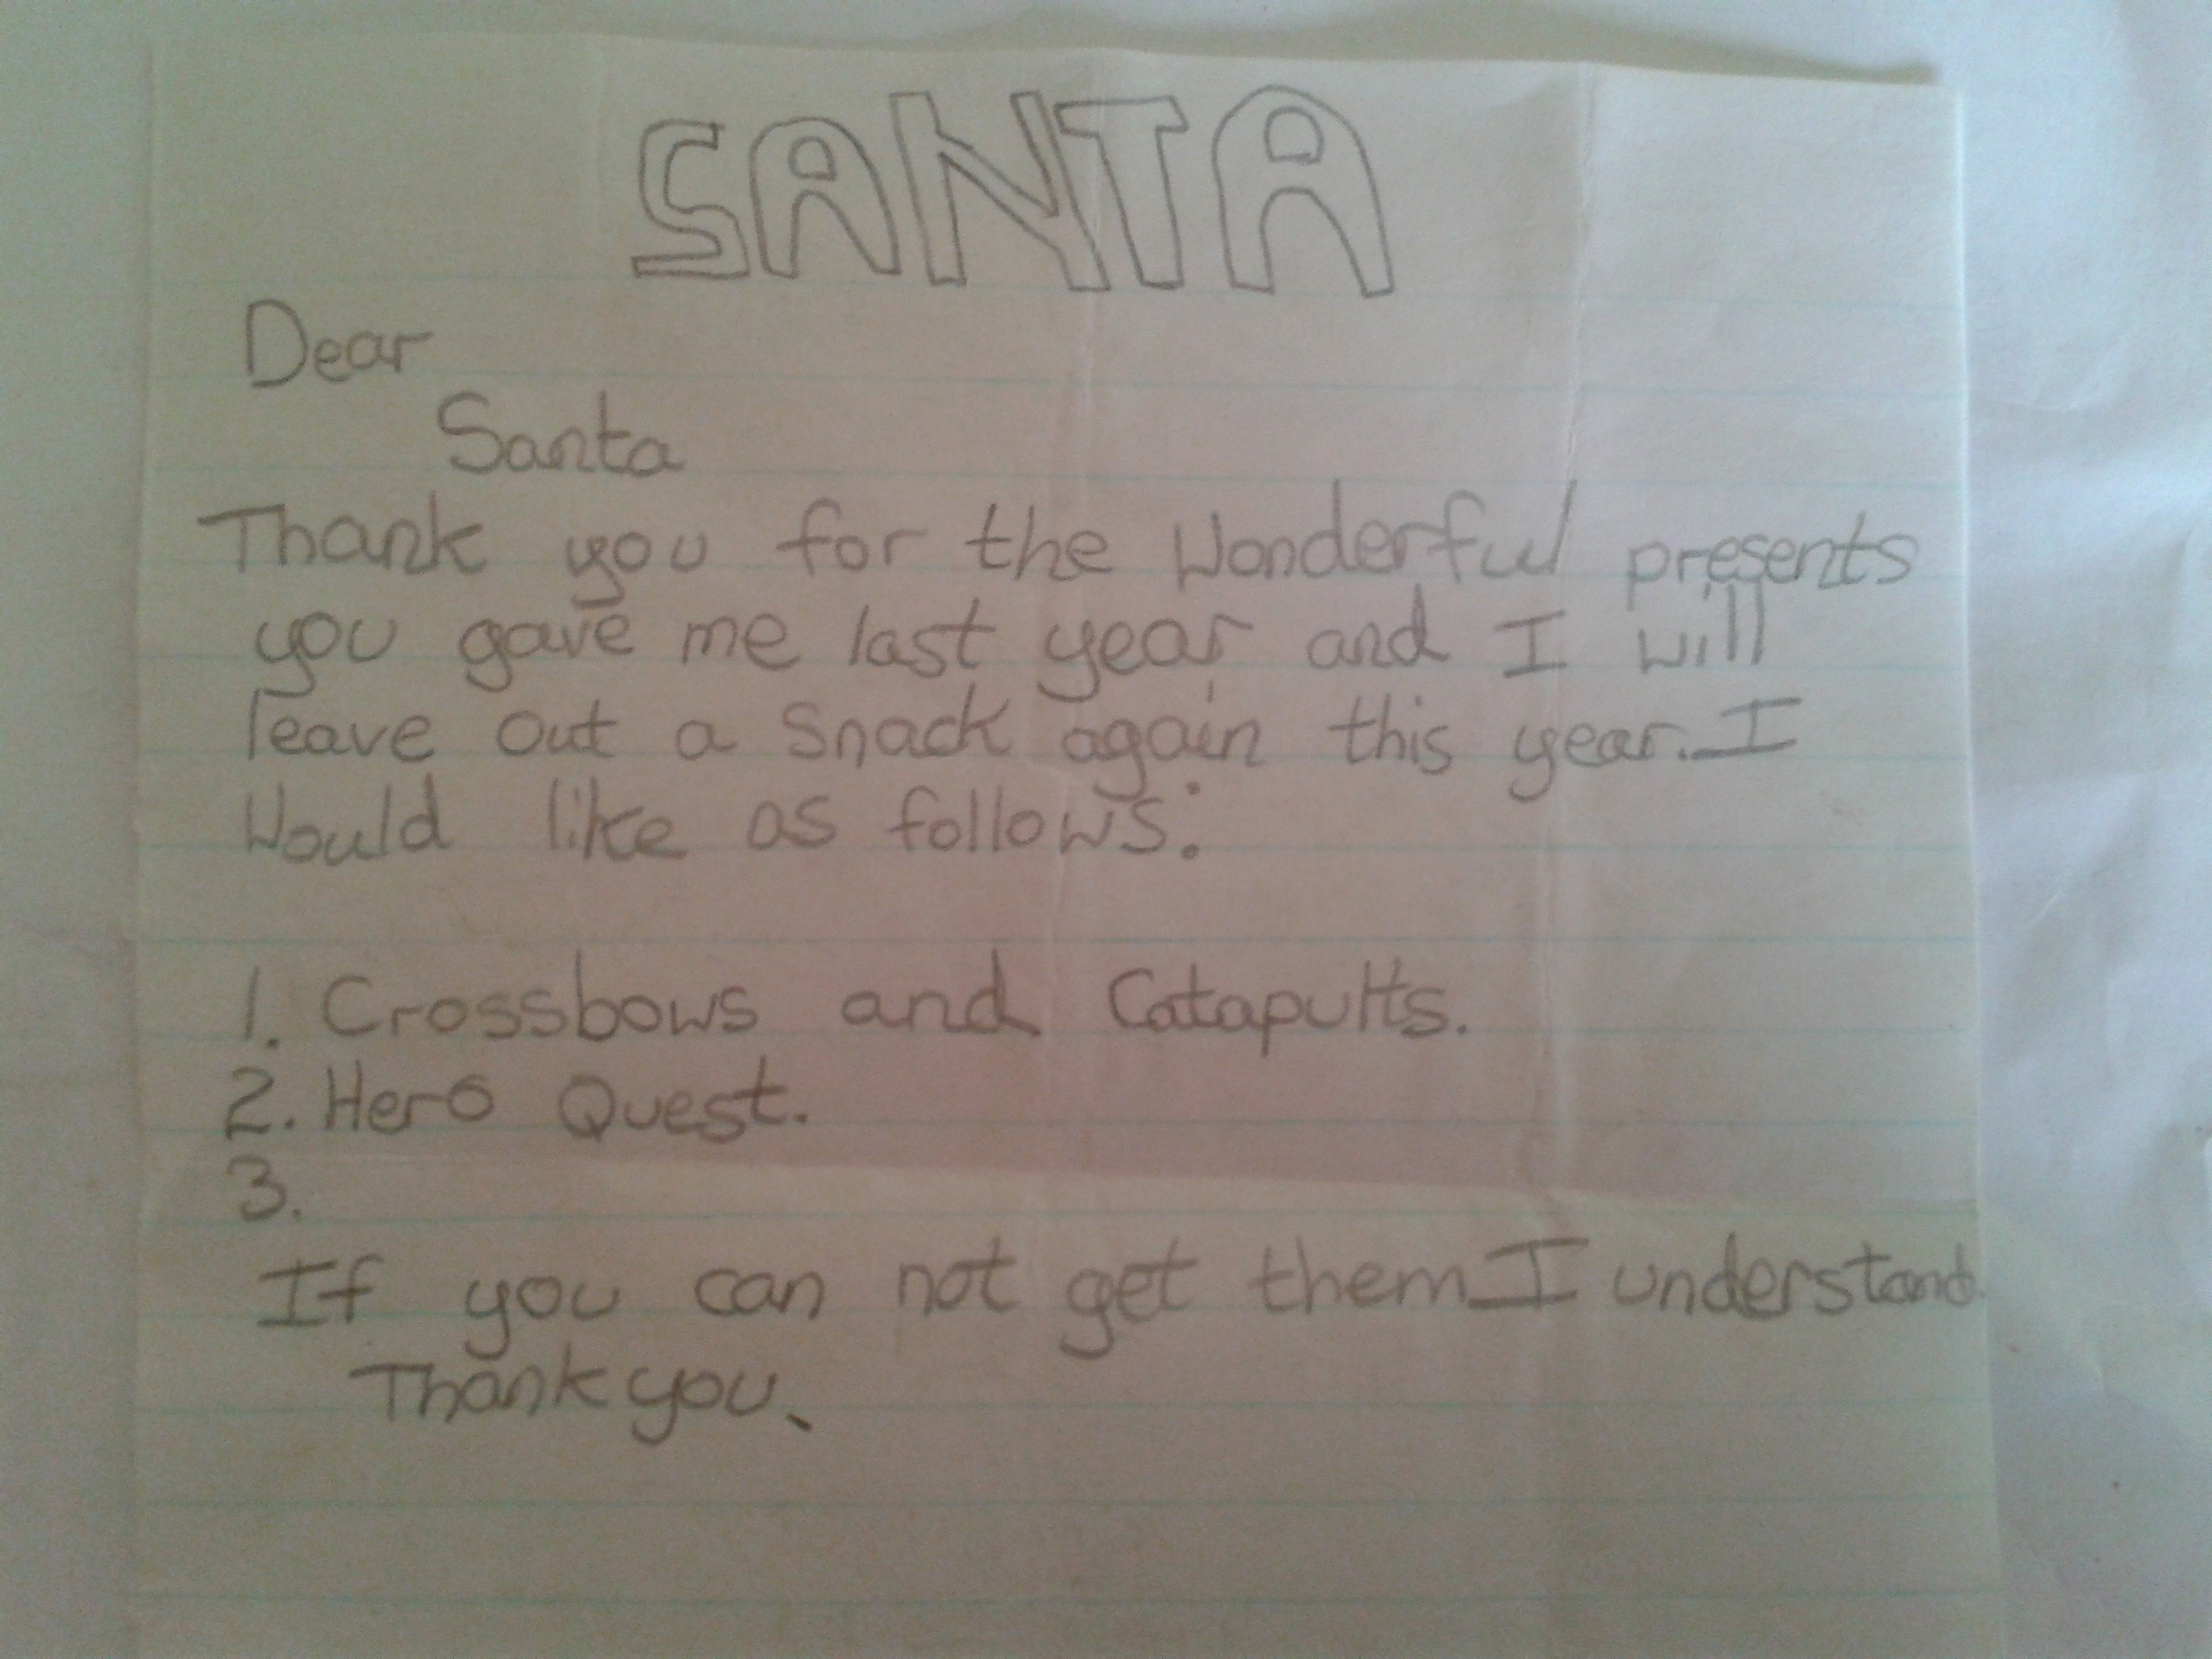 Text of request to the mythological figure, Santa